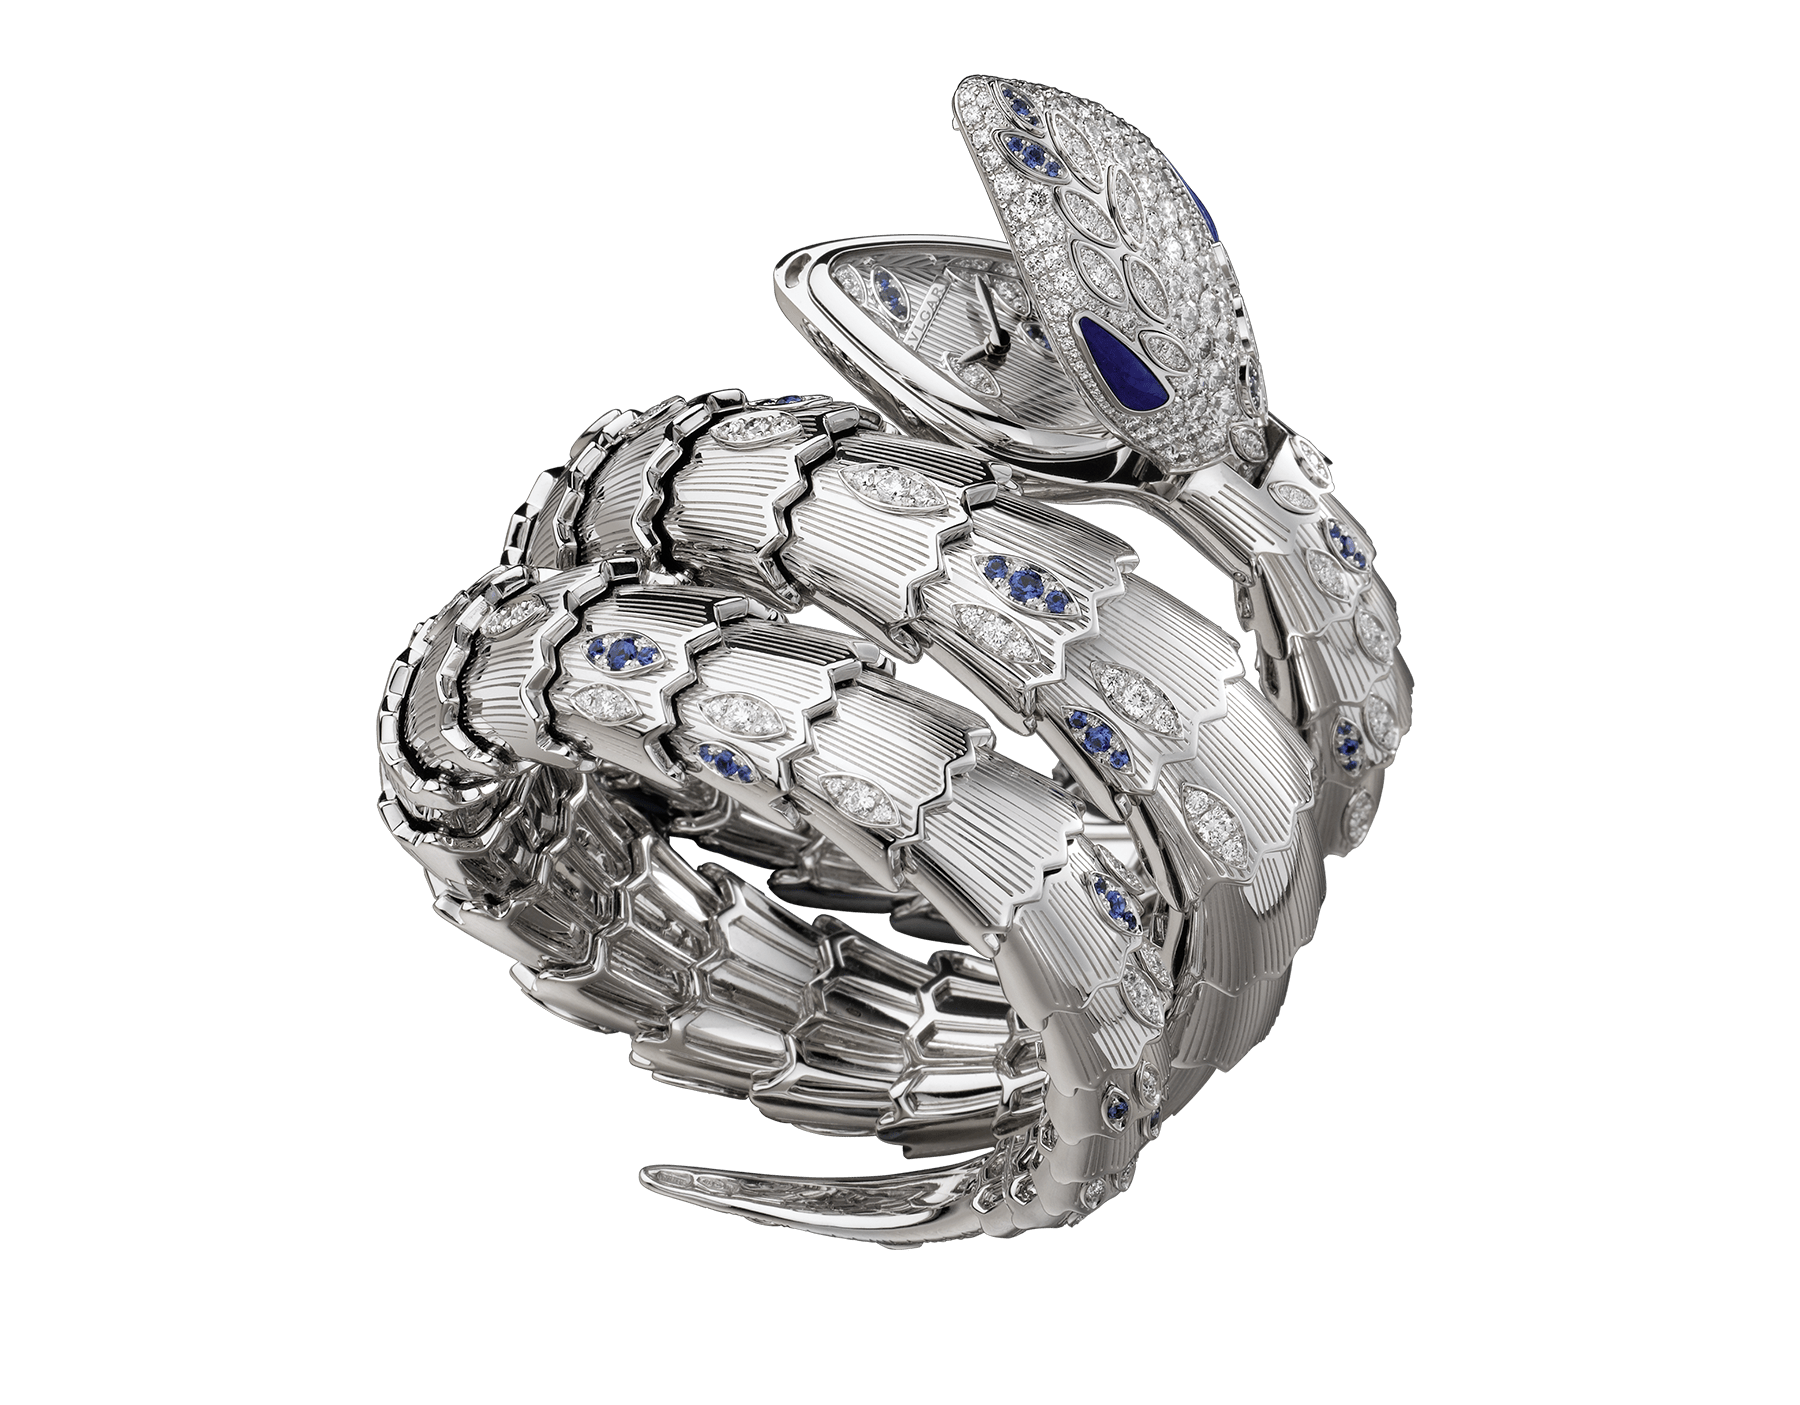 Serpenti Secret Watch with 18 kt white gold head set with brilliant cut diamonds, brilliant cut sapphires and lapis lazuli eyes, 18 kt white gold case, 18 kt white gold dial and double spiral bracelet, both set with brilliant cut diamonds and brilliant cut sapphires. 102000 image 1